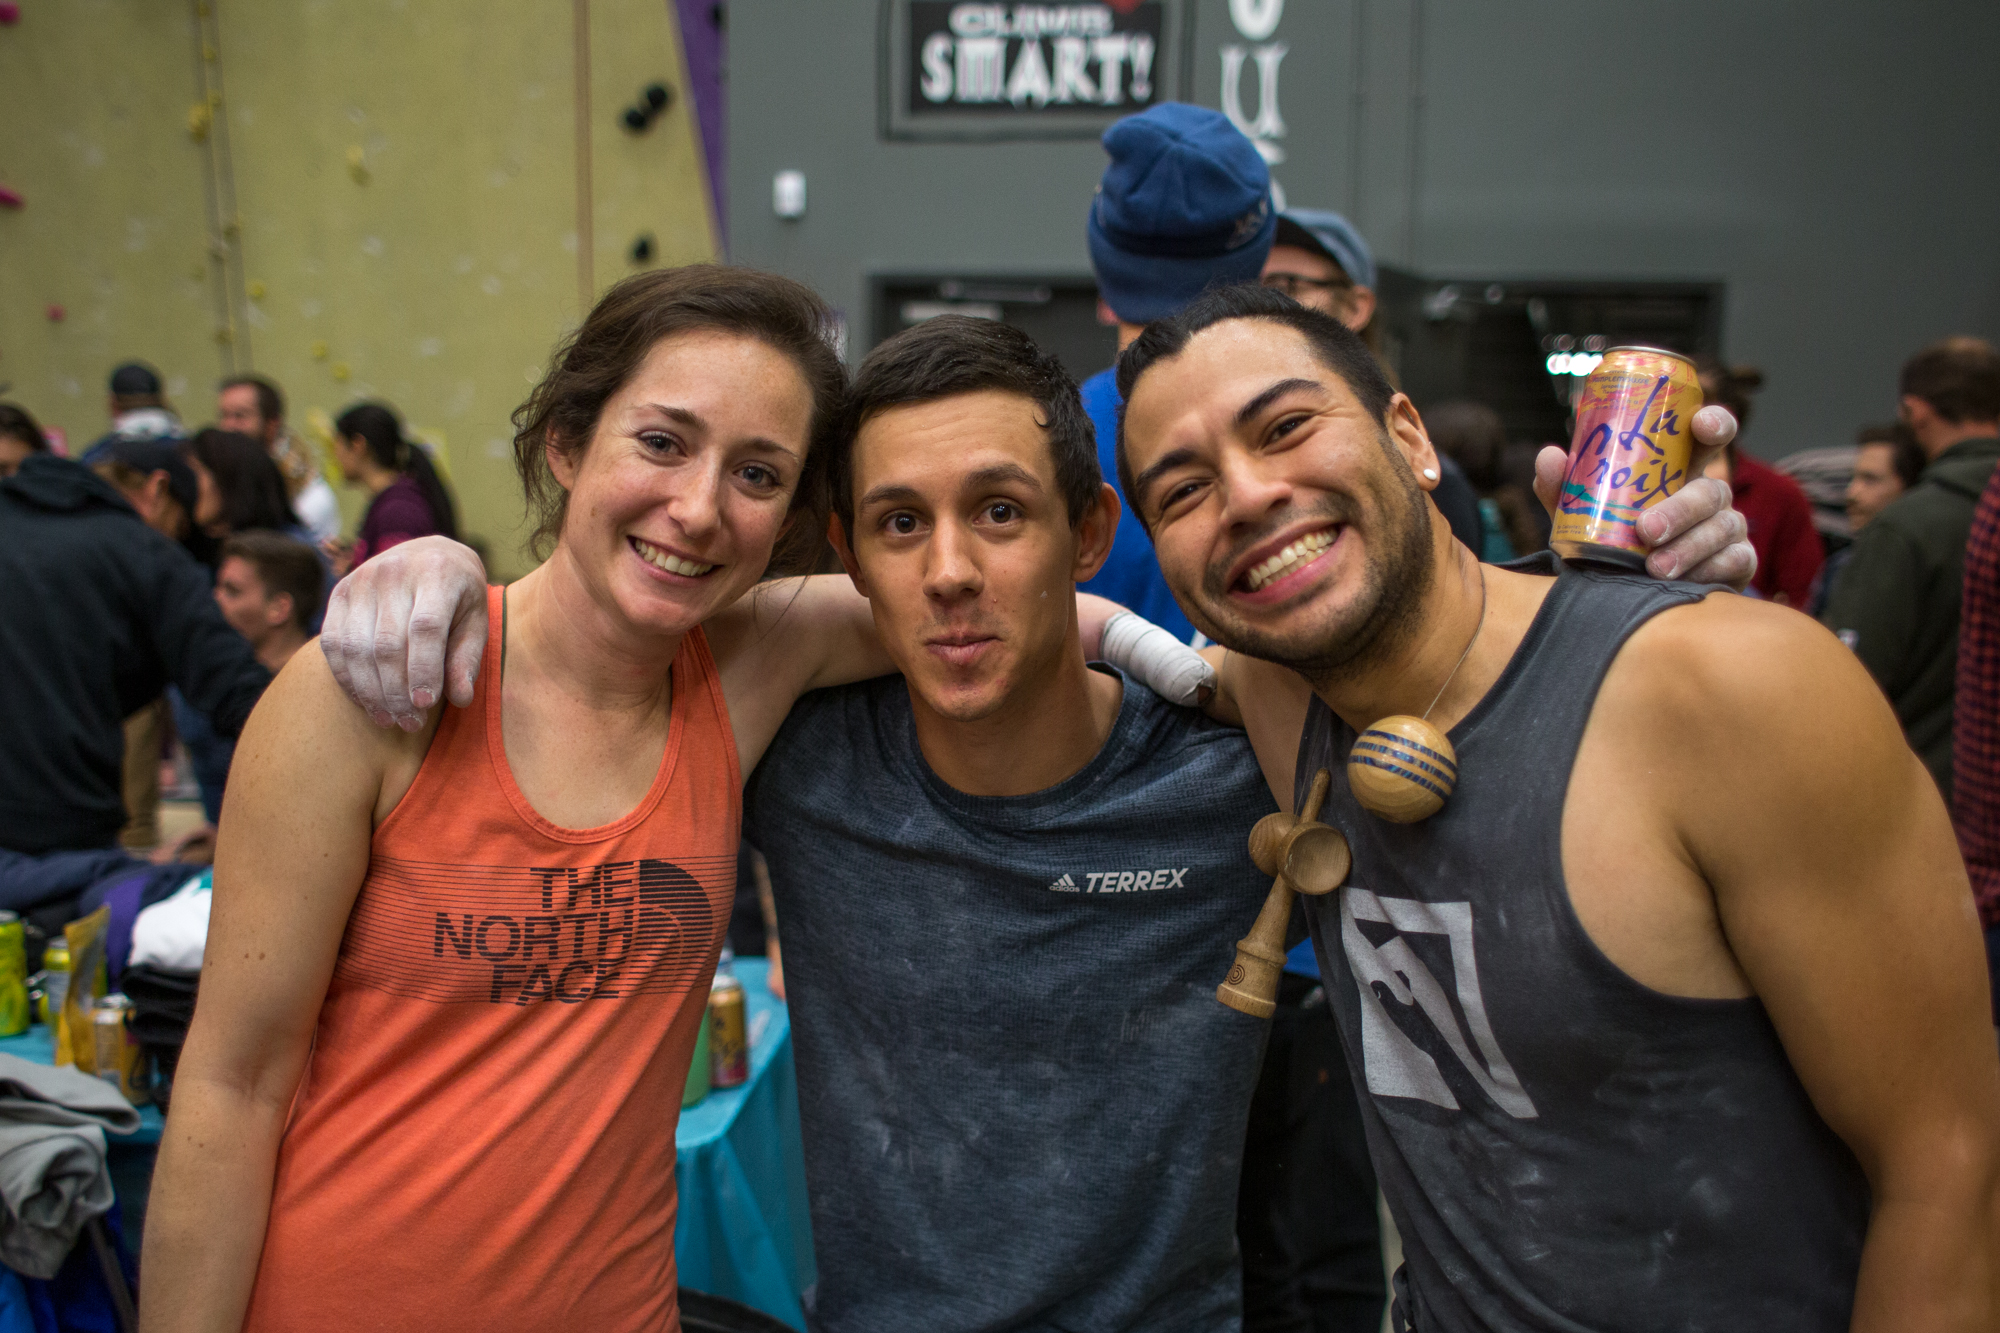 Myself, Justin and Jake at the 2019 Nationals once the climbing wrapped